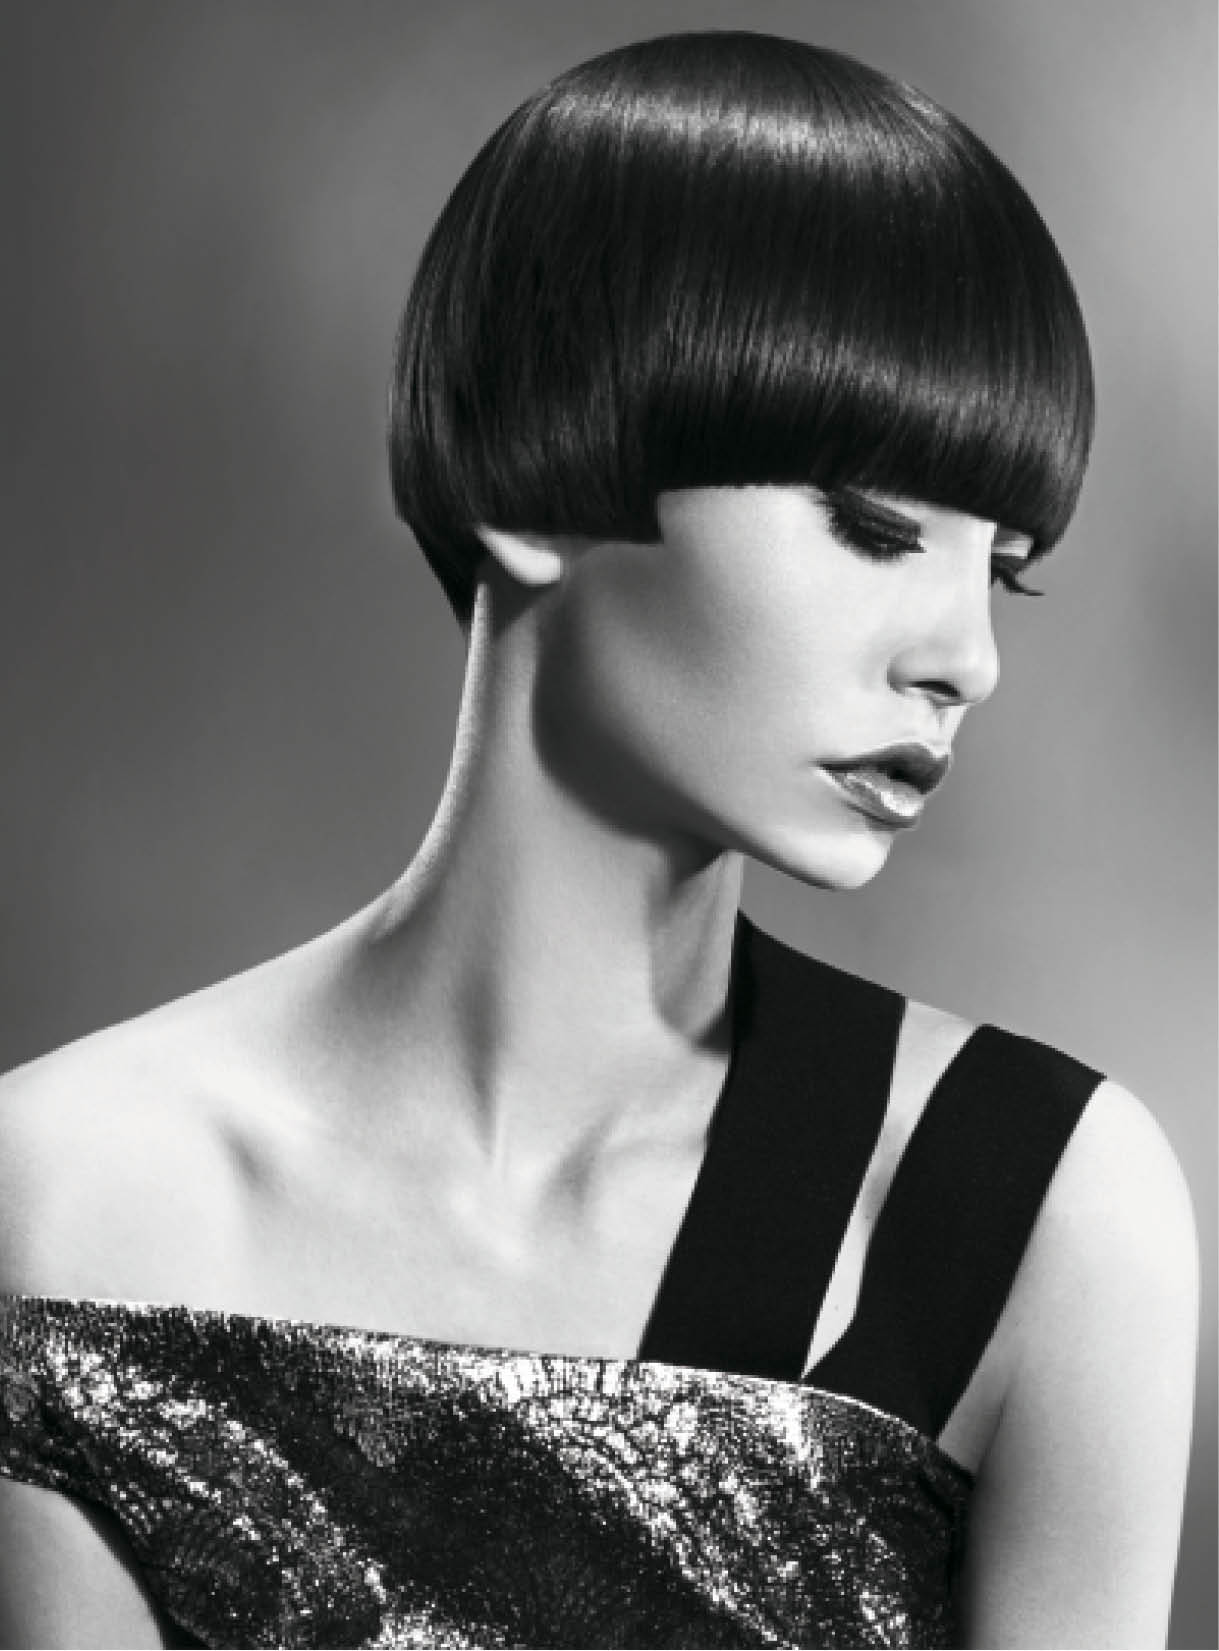 For this geometric hairstyle, Mather cut a sharp, rounded pageboy and flat-dried hair following its strong directional growth pattern, ensuring strands glided across the head. She finished with a light shine spray.